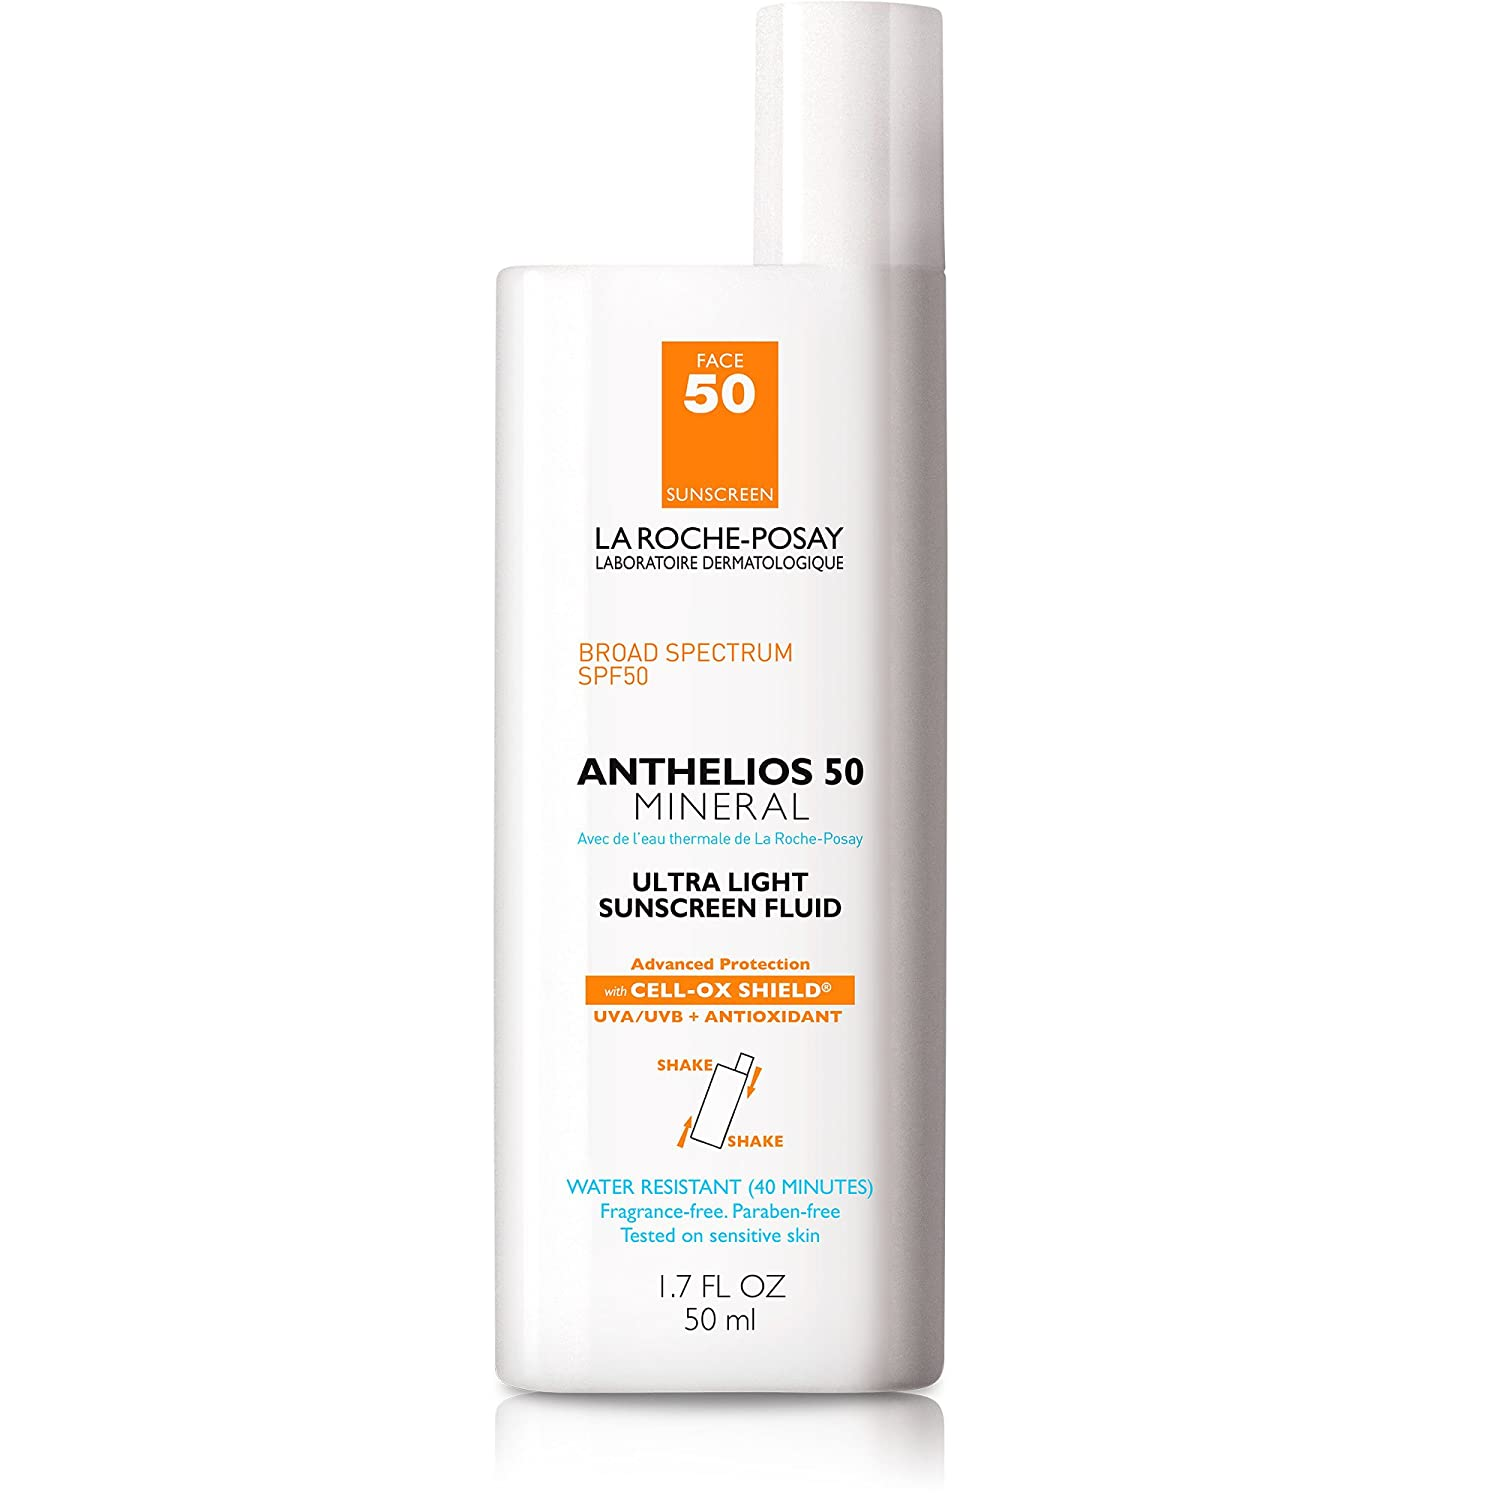 La Roche-Posay Anthelios 50 Mineral Ultra Light Sunscreen SPF 50, 1.7 Fluid Ounce S05177